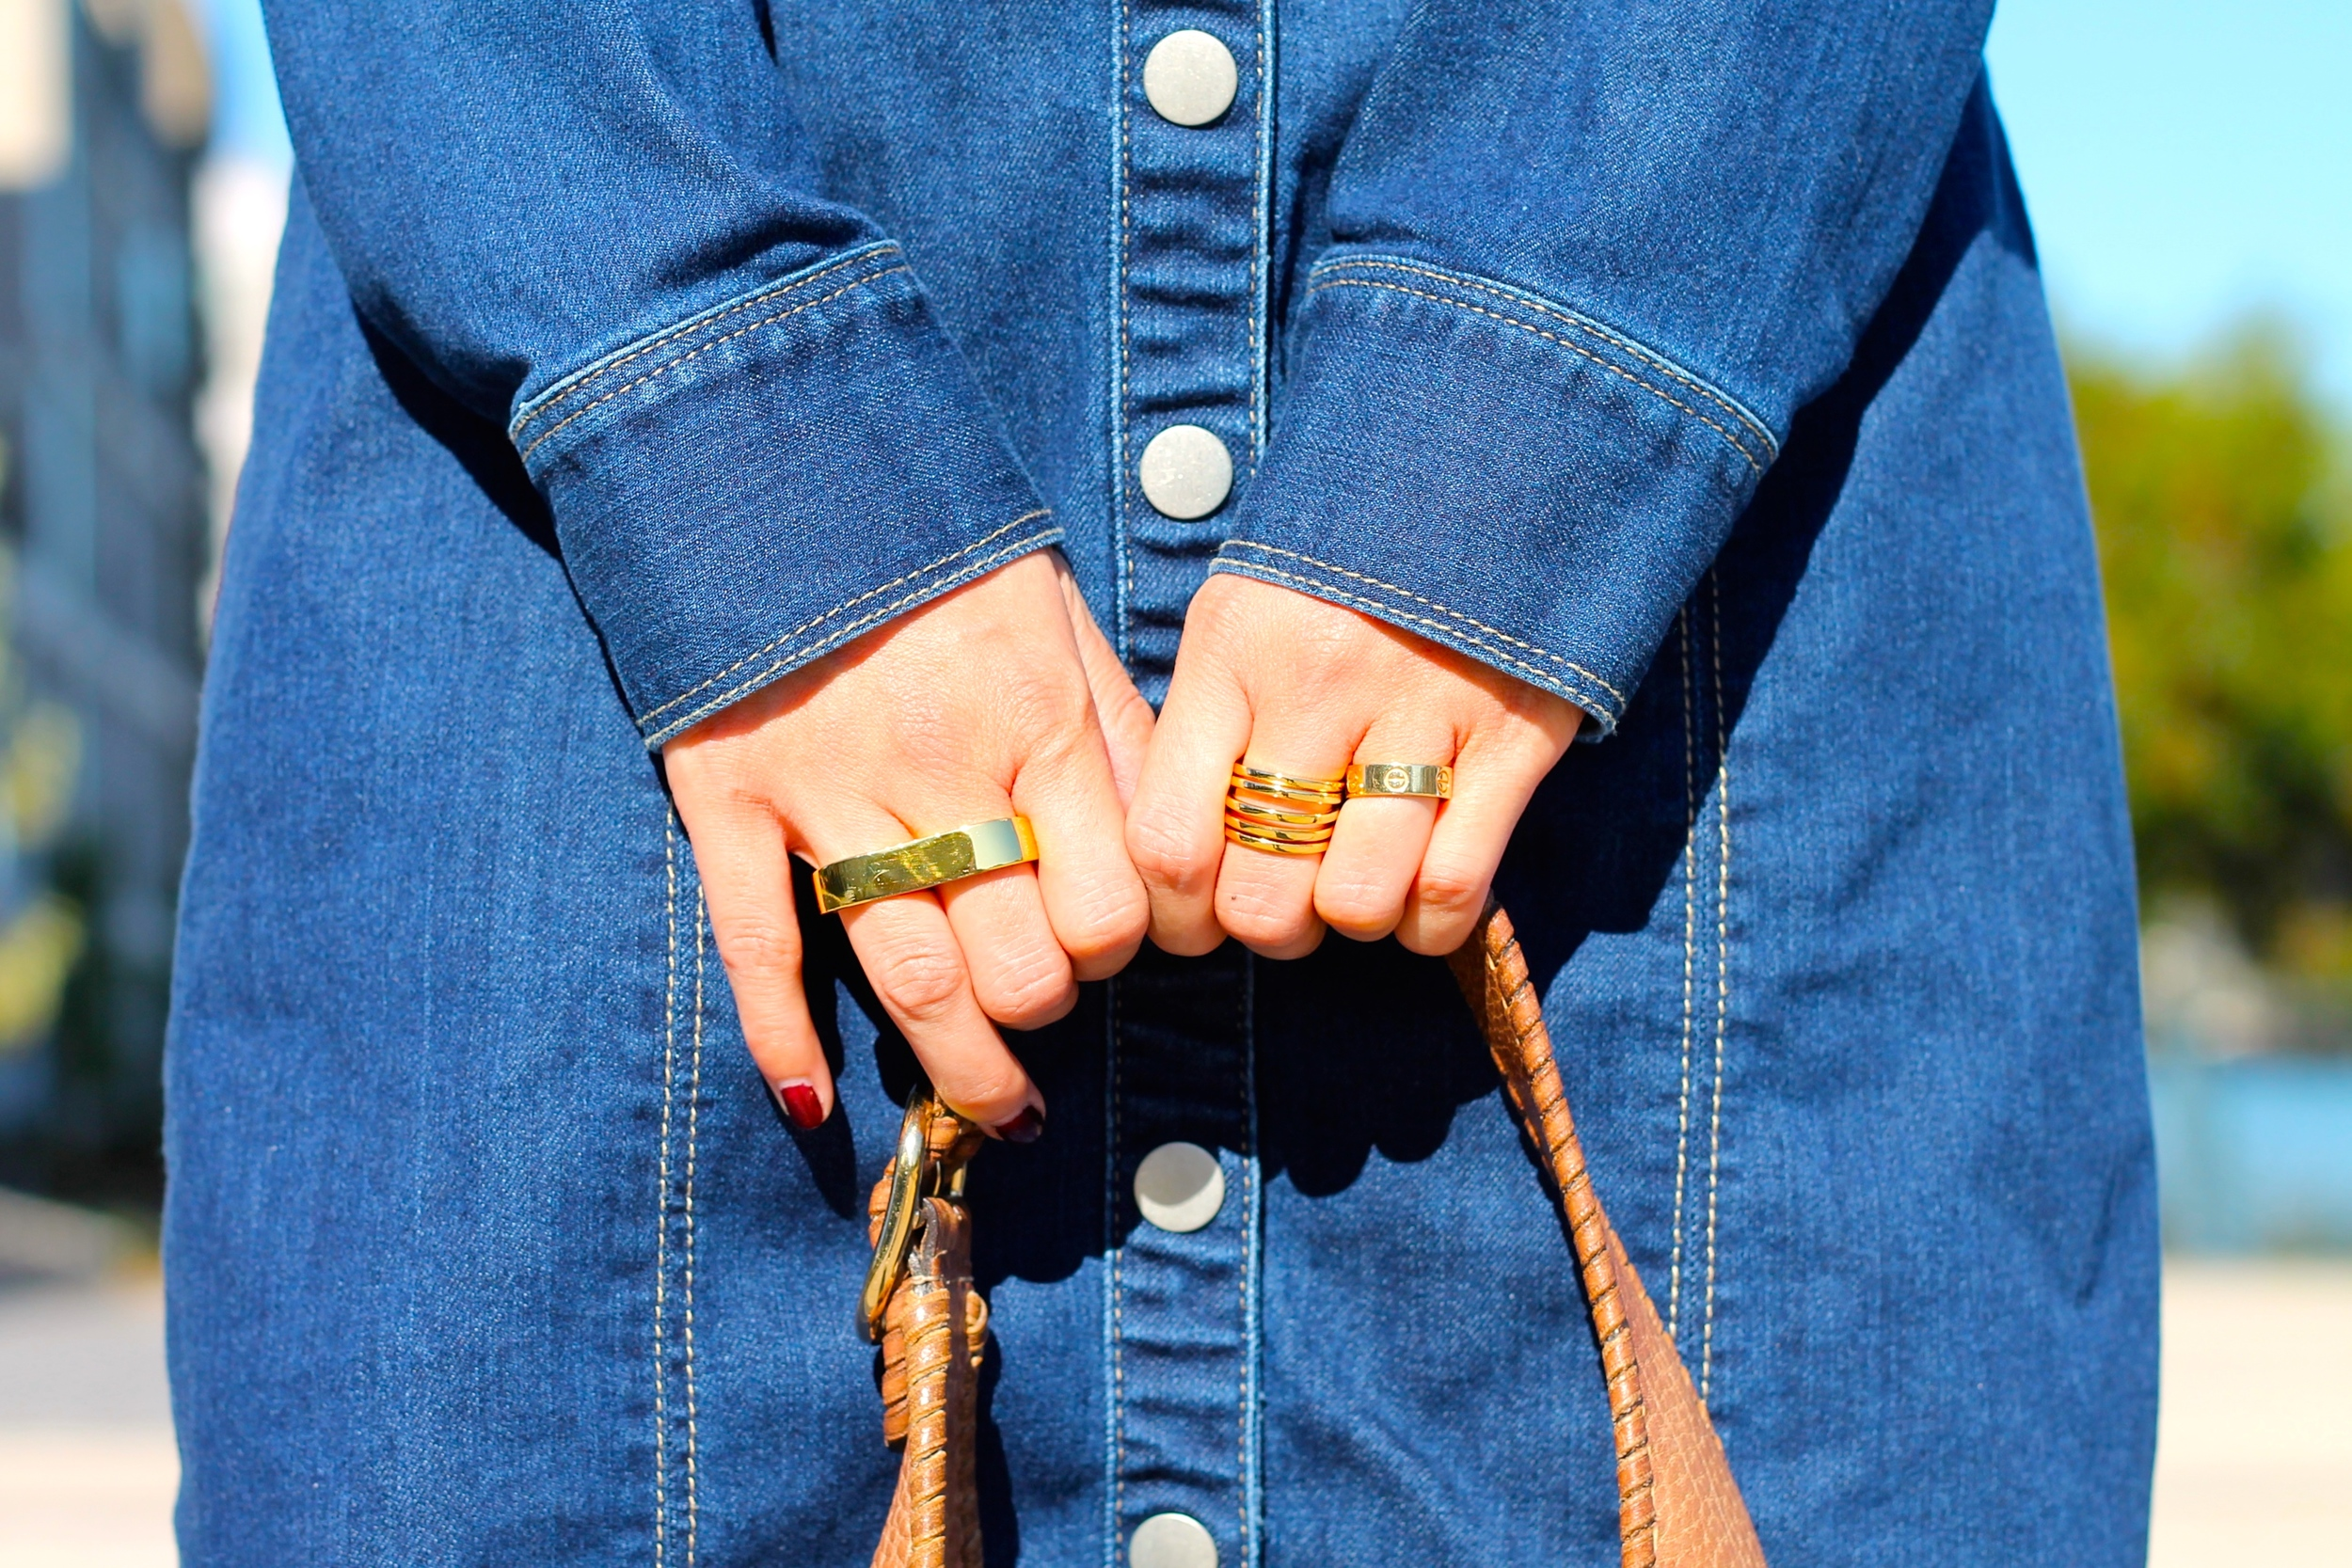 Erica Annenberg, Svelte Metals and Cartier rings